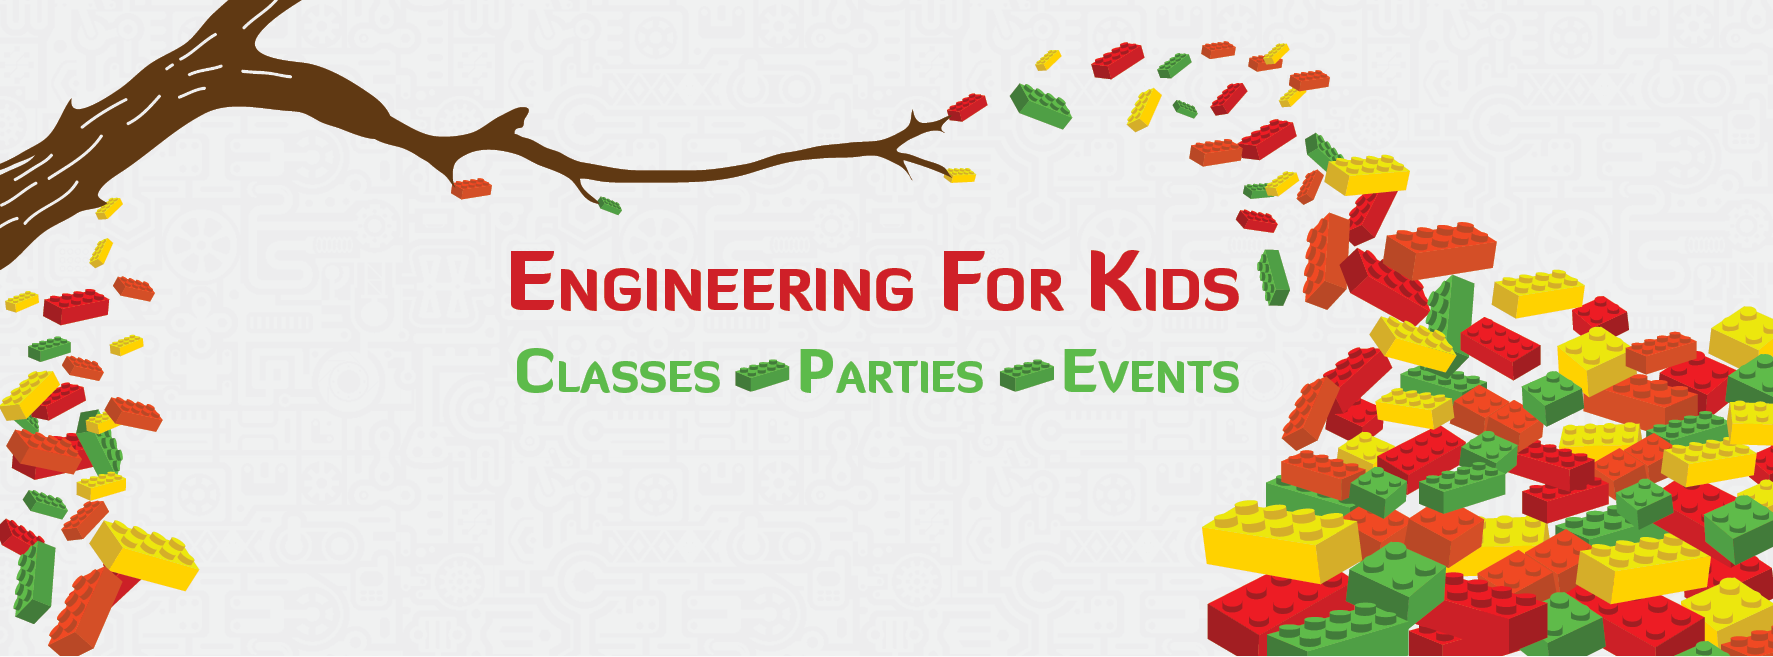 Engineering for Kids - South Suburban image 2